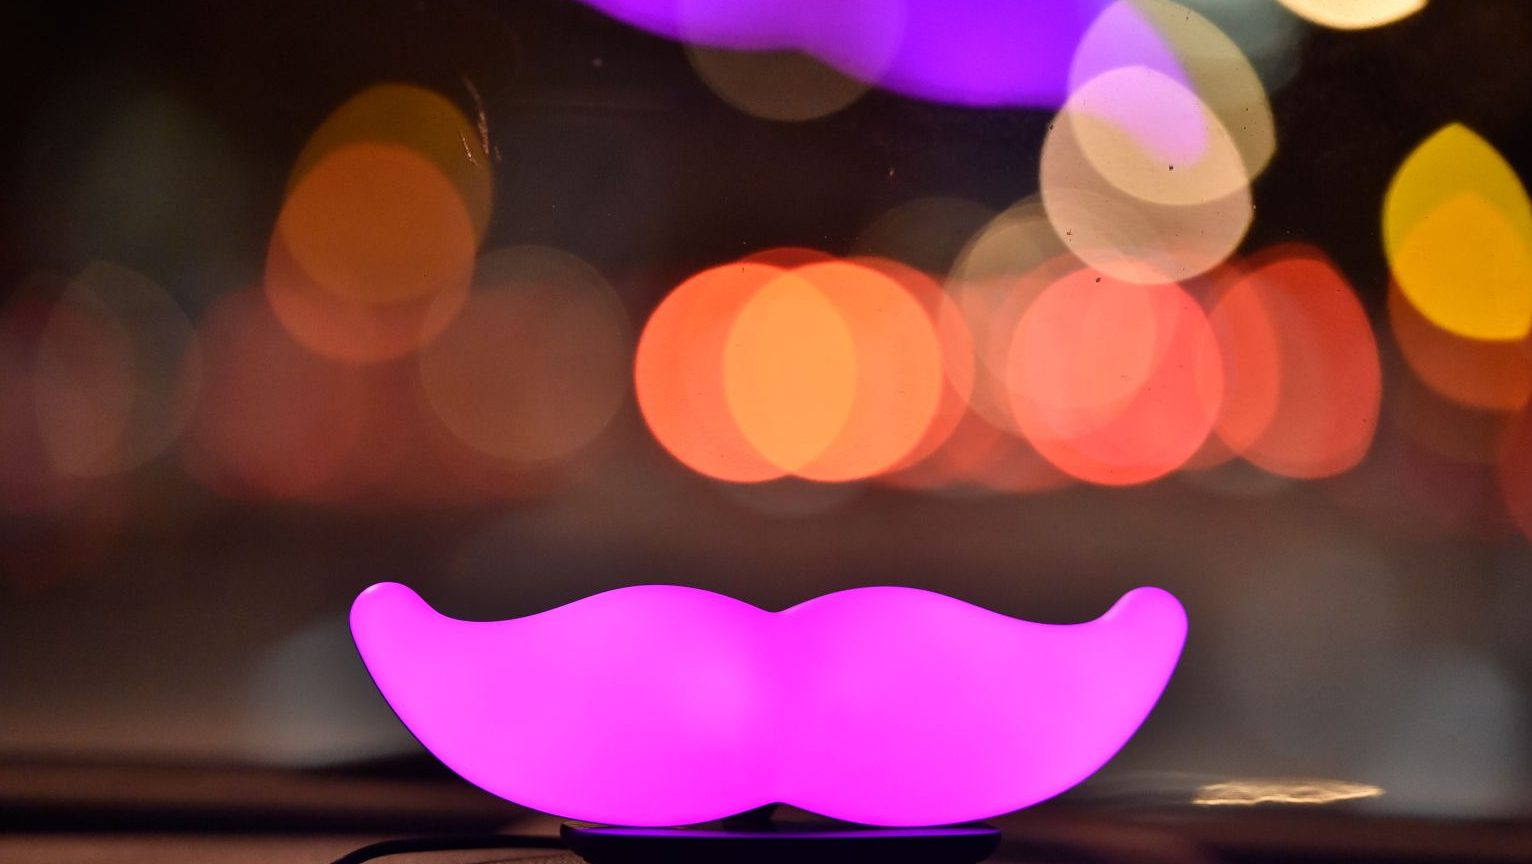 A Lyft Glowstache glows on the dashboard of a car in San Francisco on Feb. 03, 2016. (Josh Edelson/AP Images for Lyft)